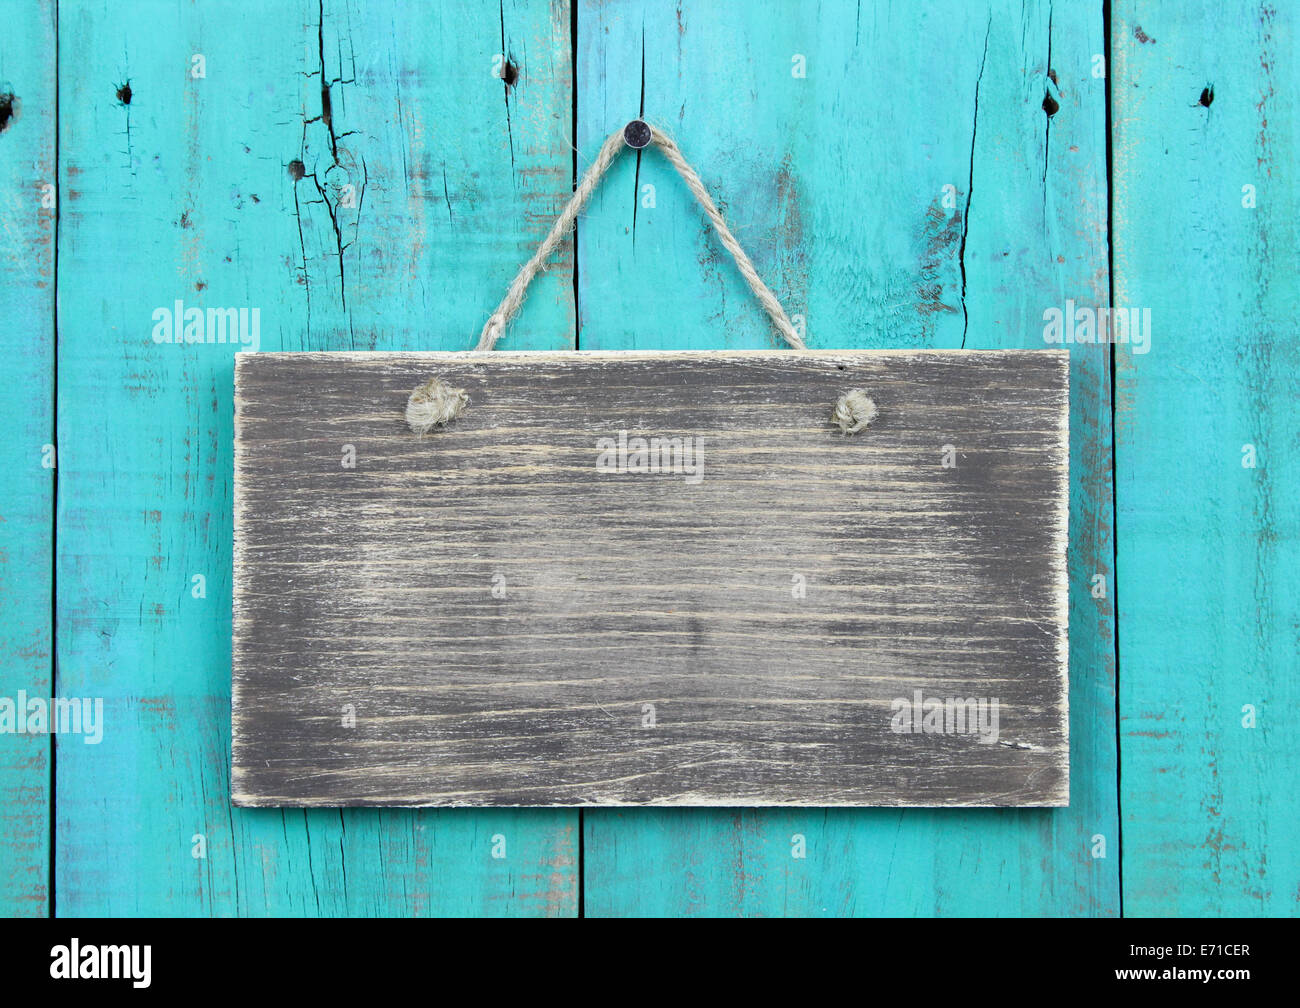 Weathered blank sign hanging on antique teal blue rustic wooden door Stock Photo - Alamy